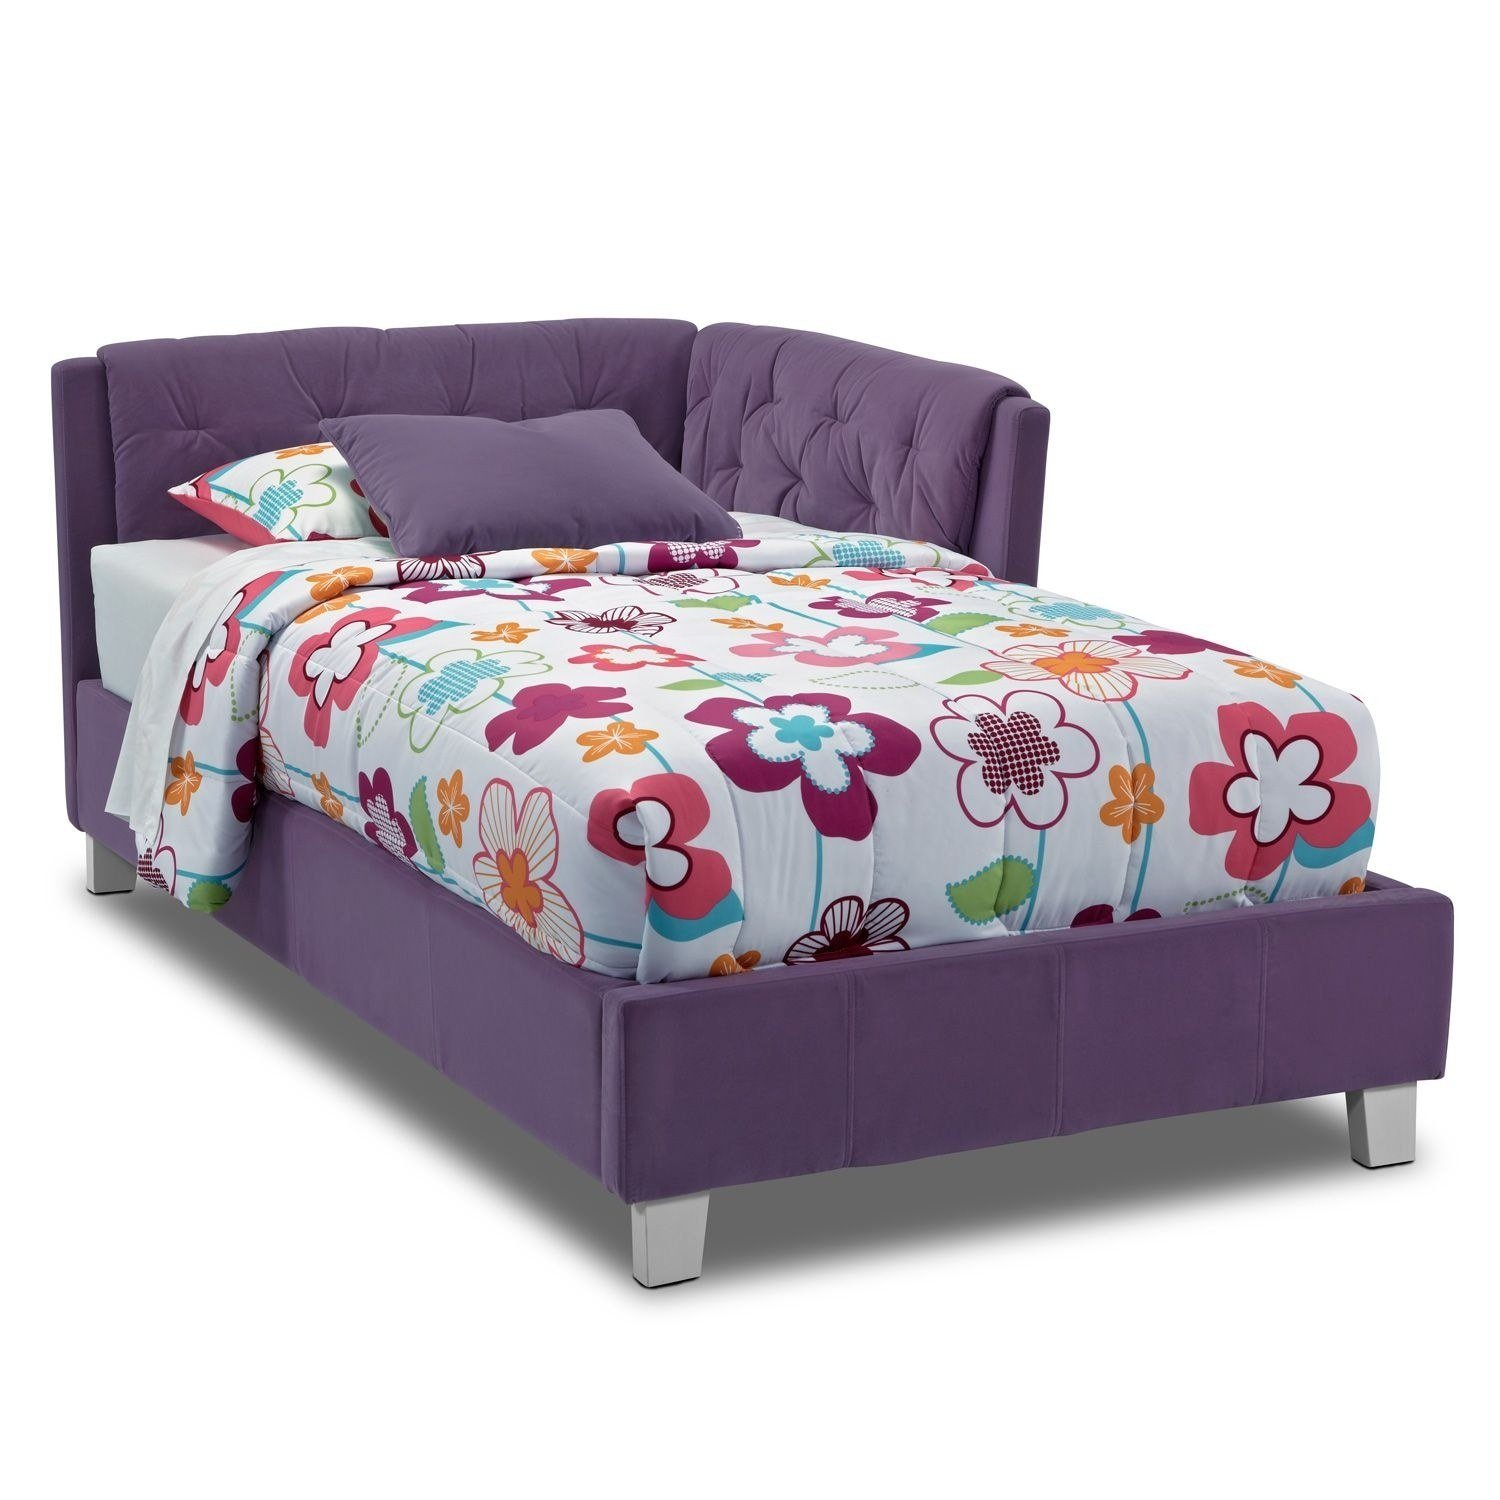 Best Jordan Twin Corner Bed Purple Value City Furniture With Pictures